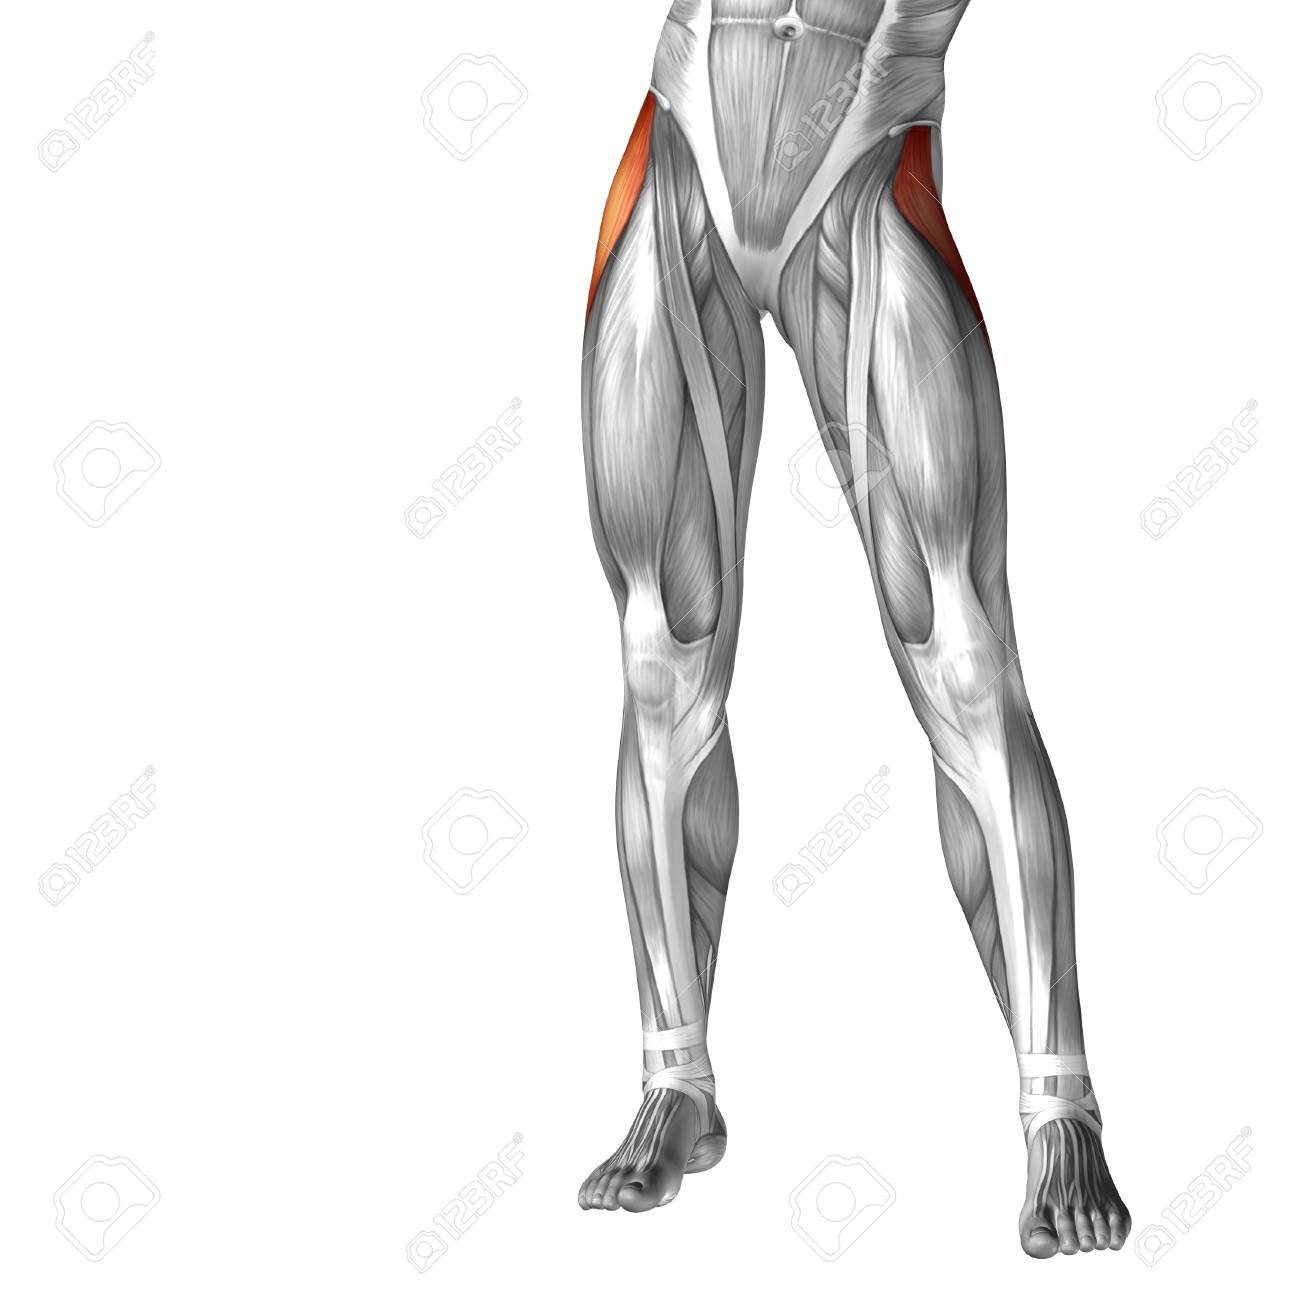 Conceptual 3d Human Front Upper Leg Muscle Anatomy Isolated On